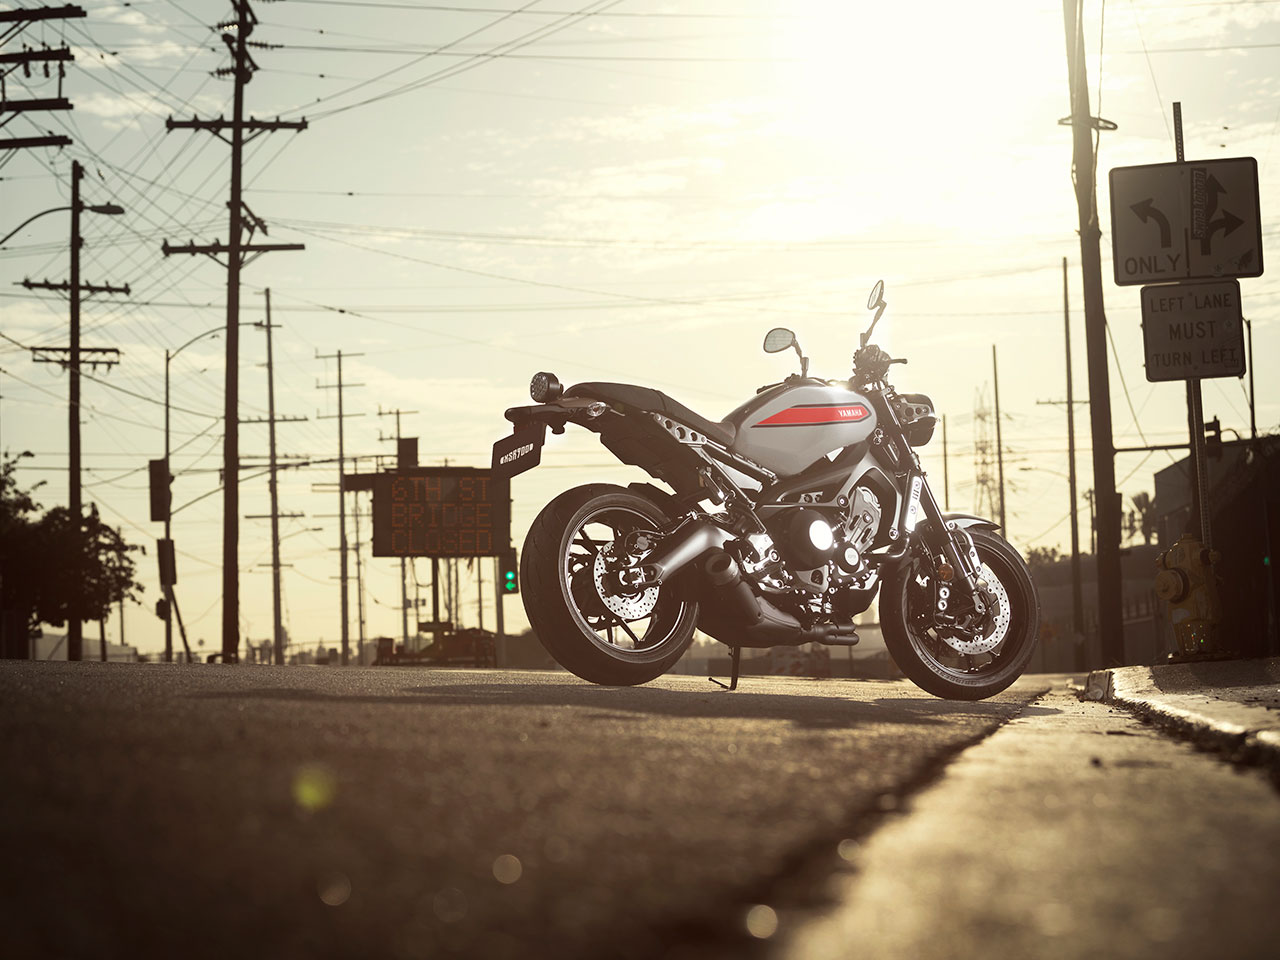 Yamaha XSR900 motorcycle parked on the road